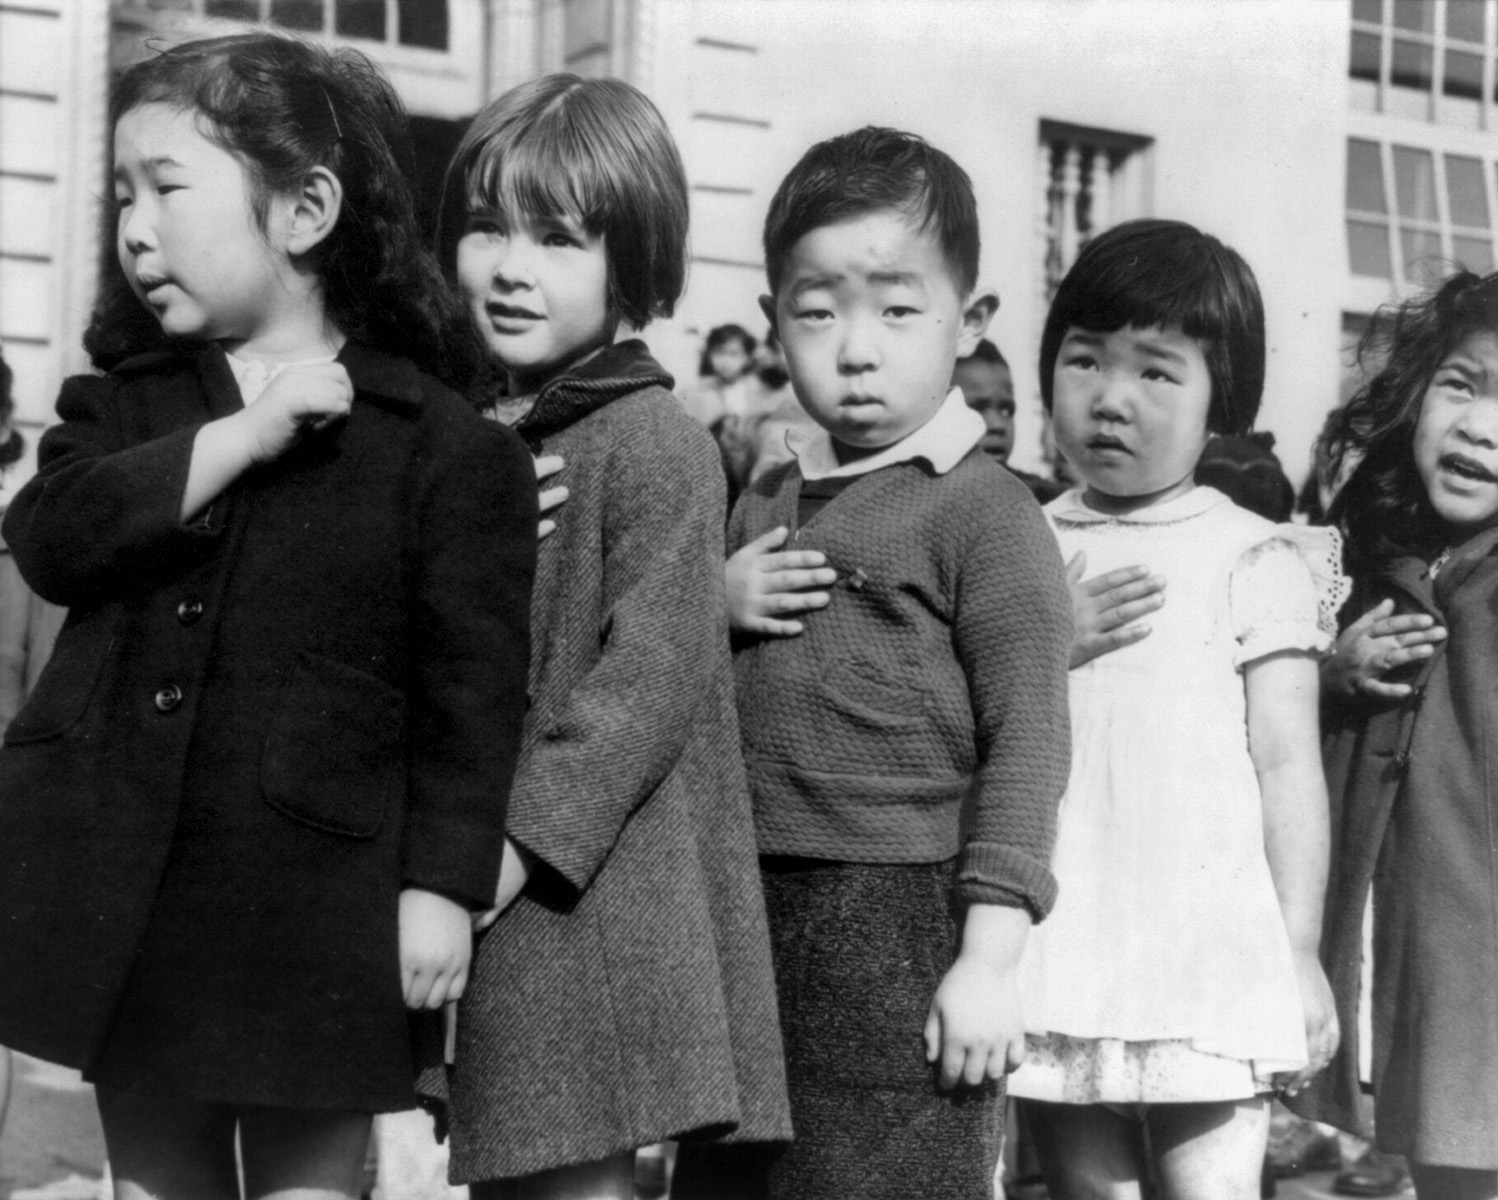 Japanese children standing for the Pledge of Allegiance before internment in 1942.